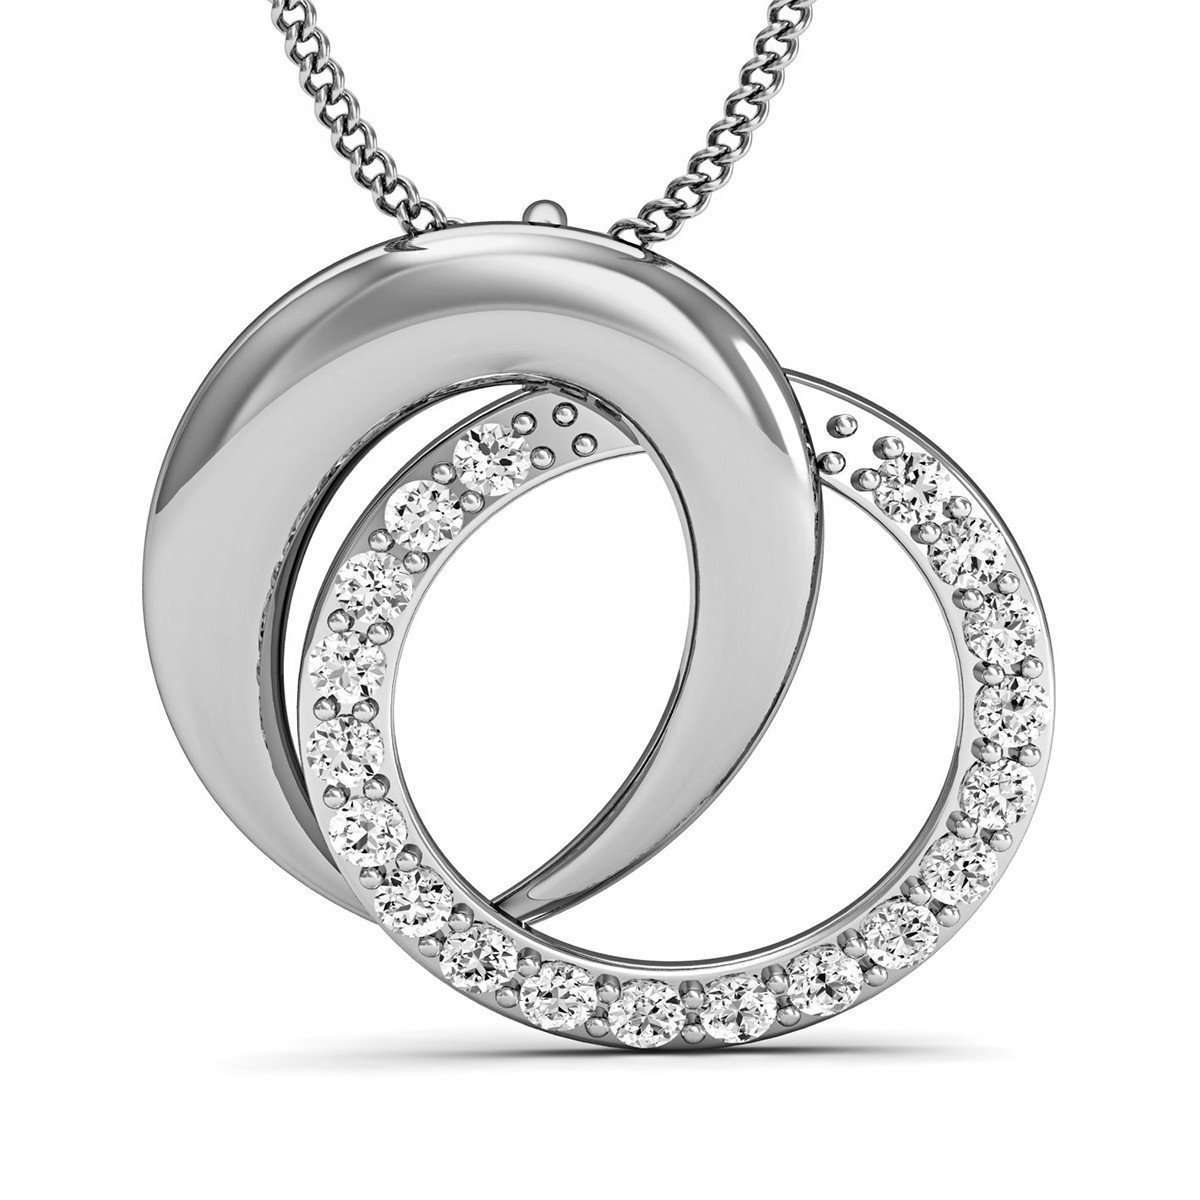 10kt White Gold Pave Pendant Handmade with Premium Quality Diamonds-Diamoire Jewels-JewelStreet EU